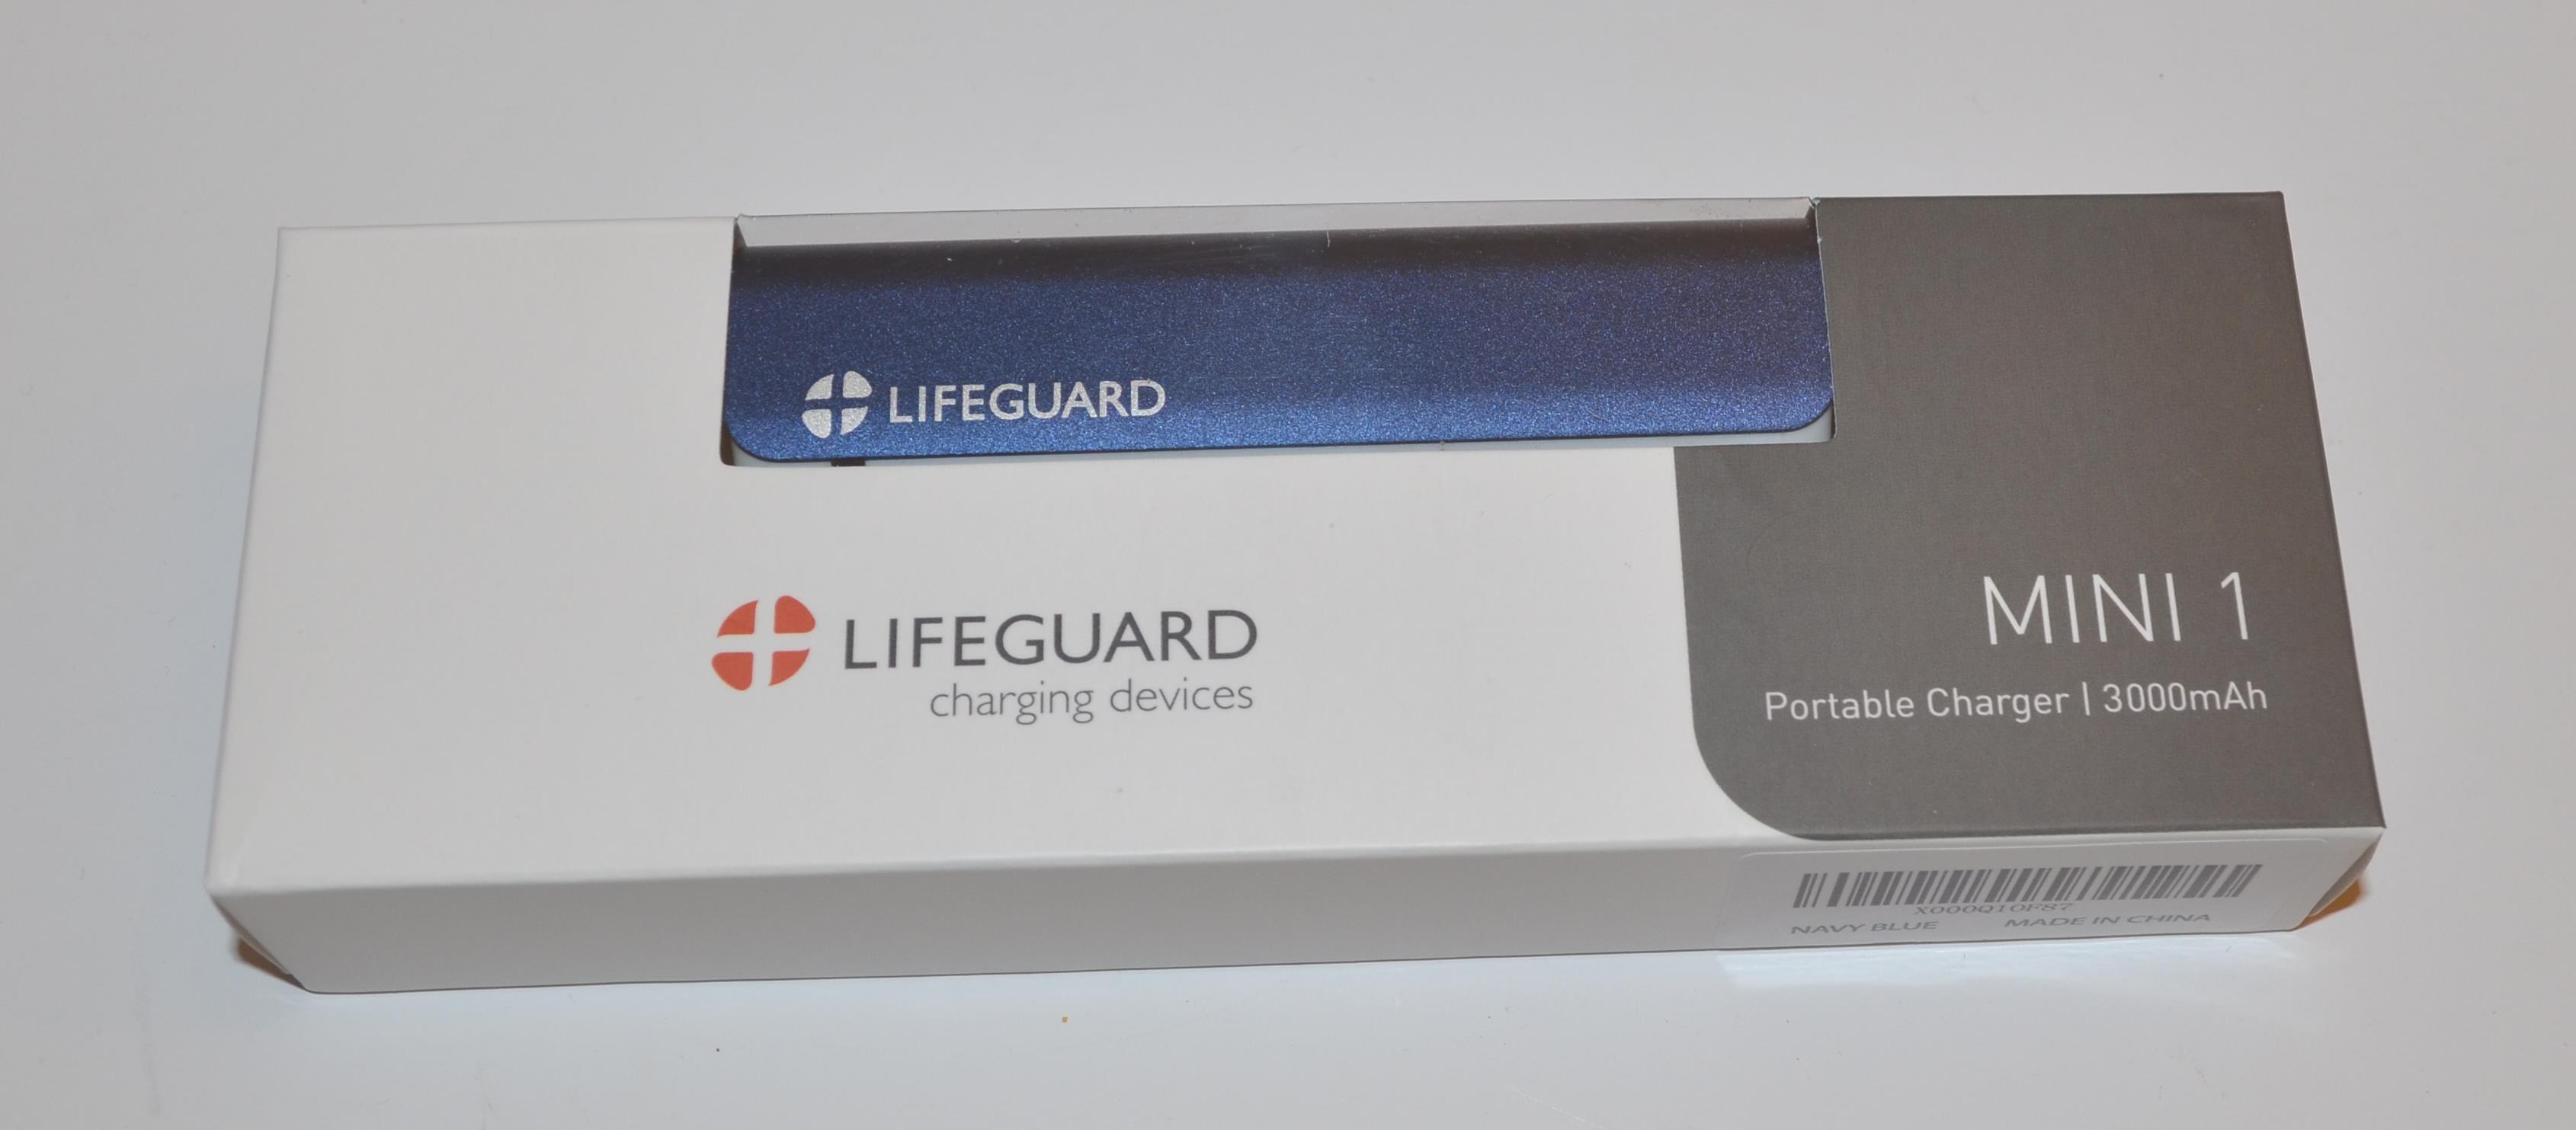 Lifeguard MINI 1 Portable Charger Power Bank Review